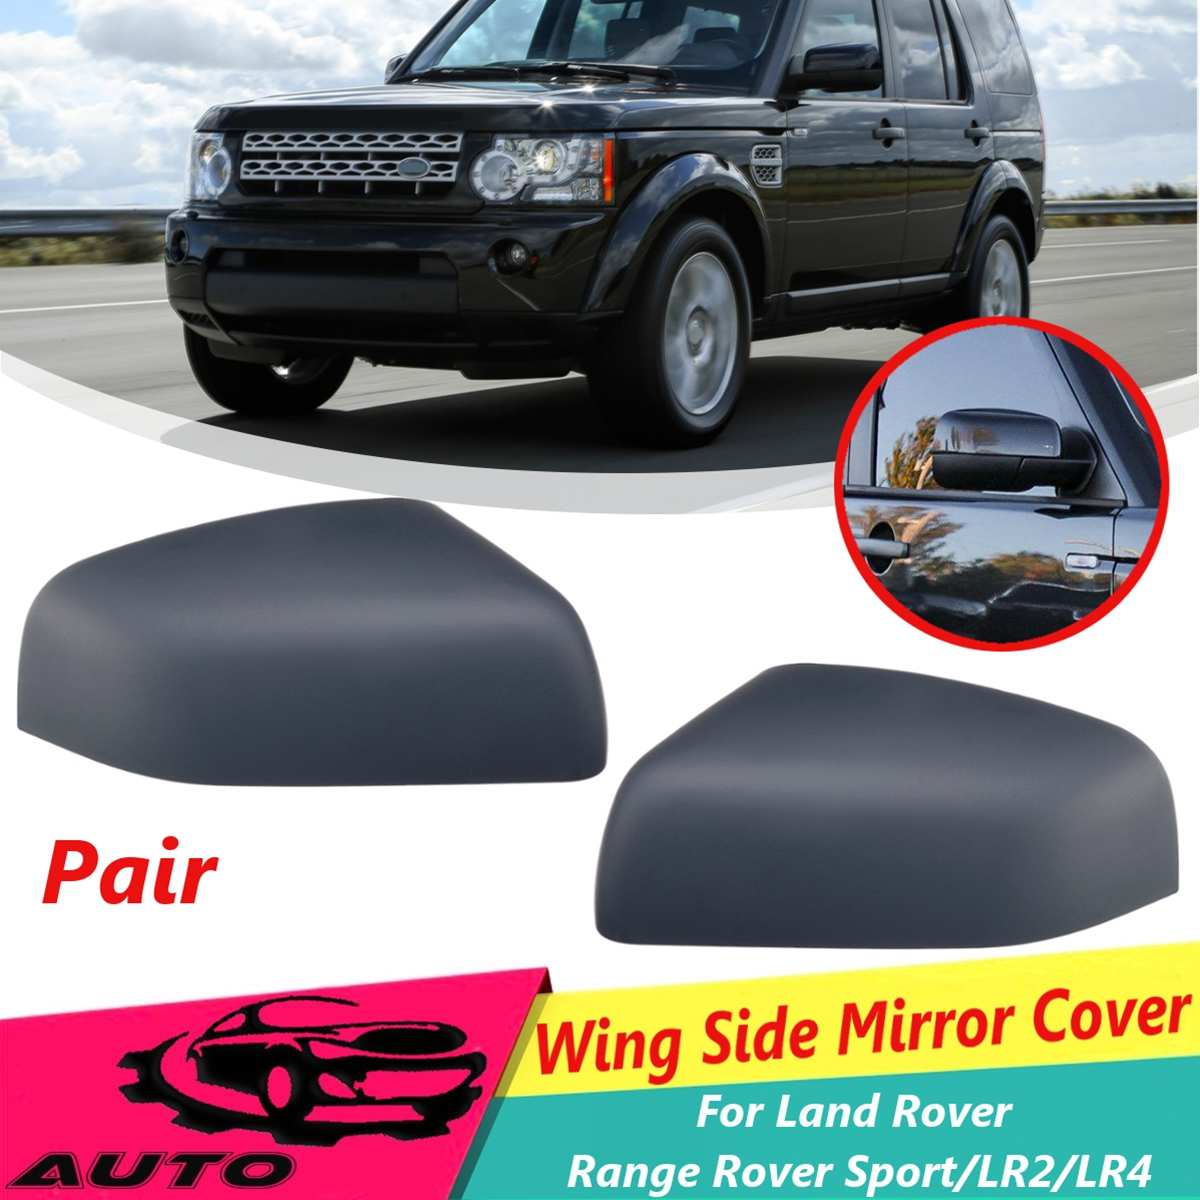 1 Pair Car Rainproof Rearview Mirror Protective Film For Land Rover Lr4 Lr3 Lr2 Range Rover Evoque Defender Discovery Freelander Automobiles & Motorcycles